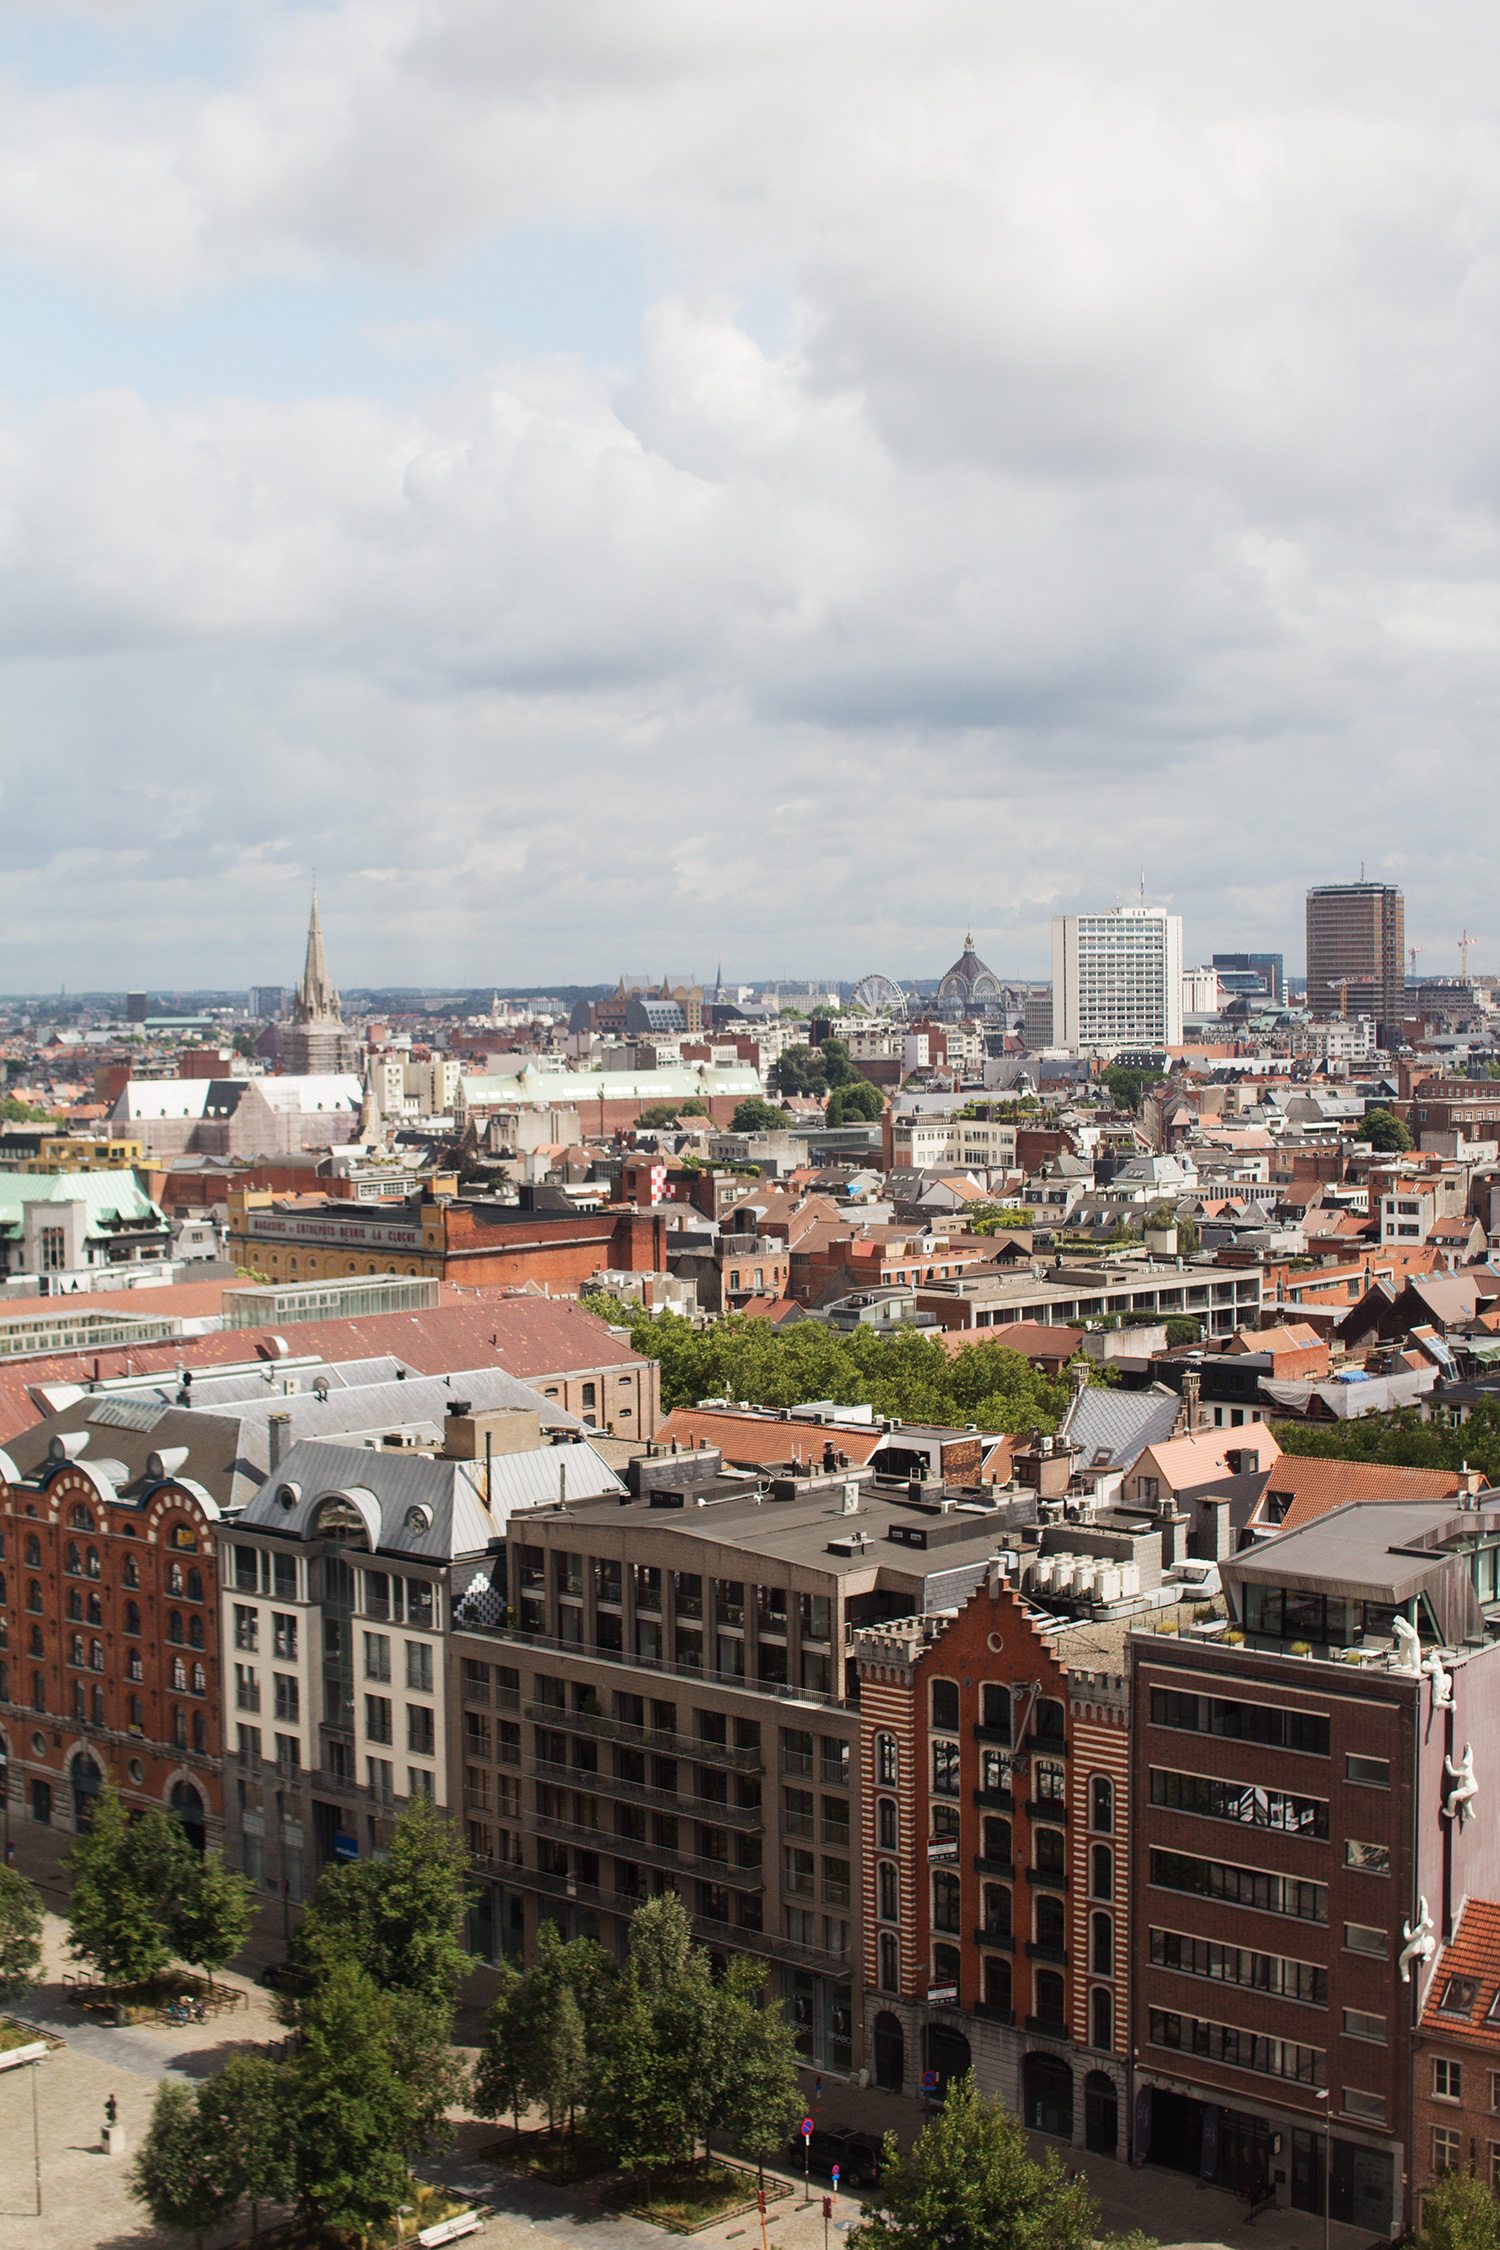 View of Antwerp city centre from the MAS Museum